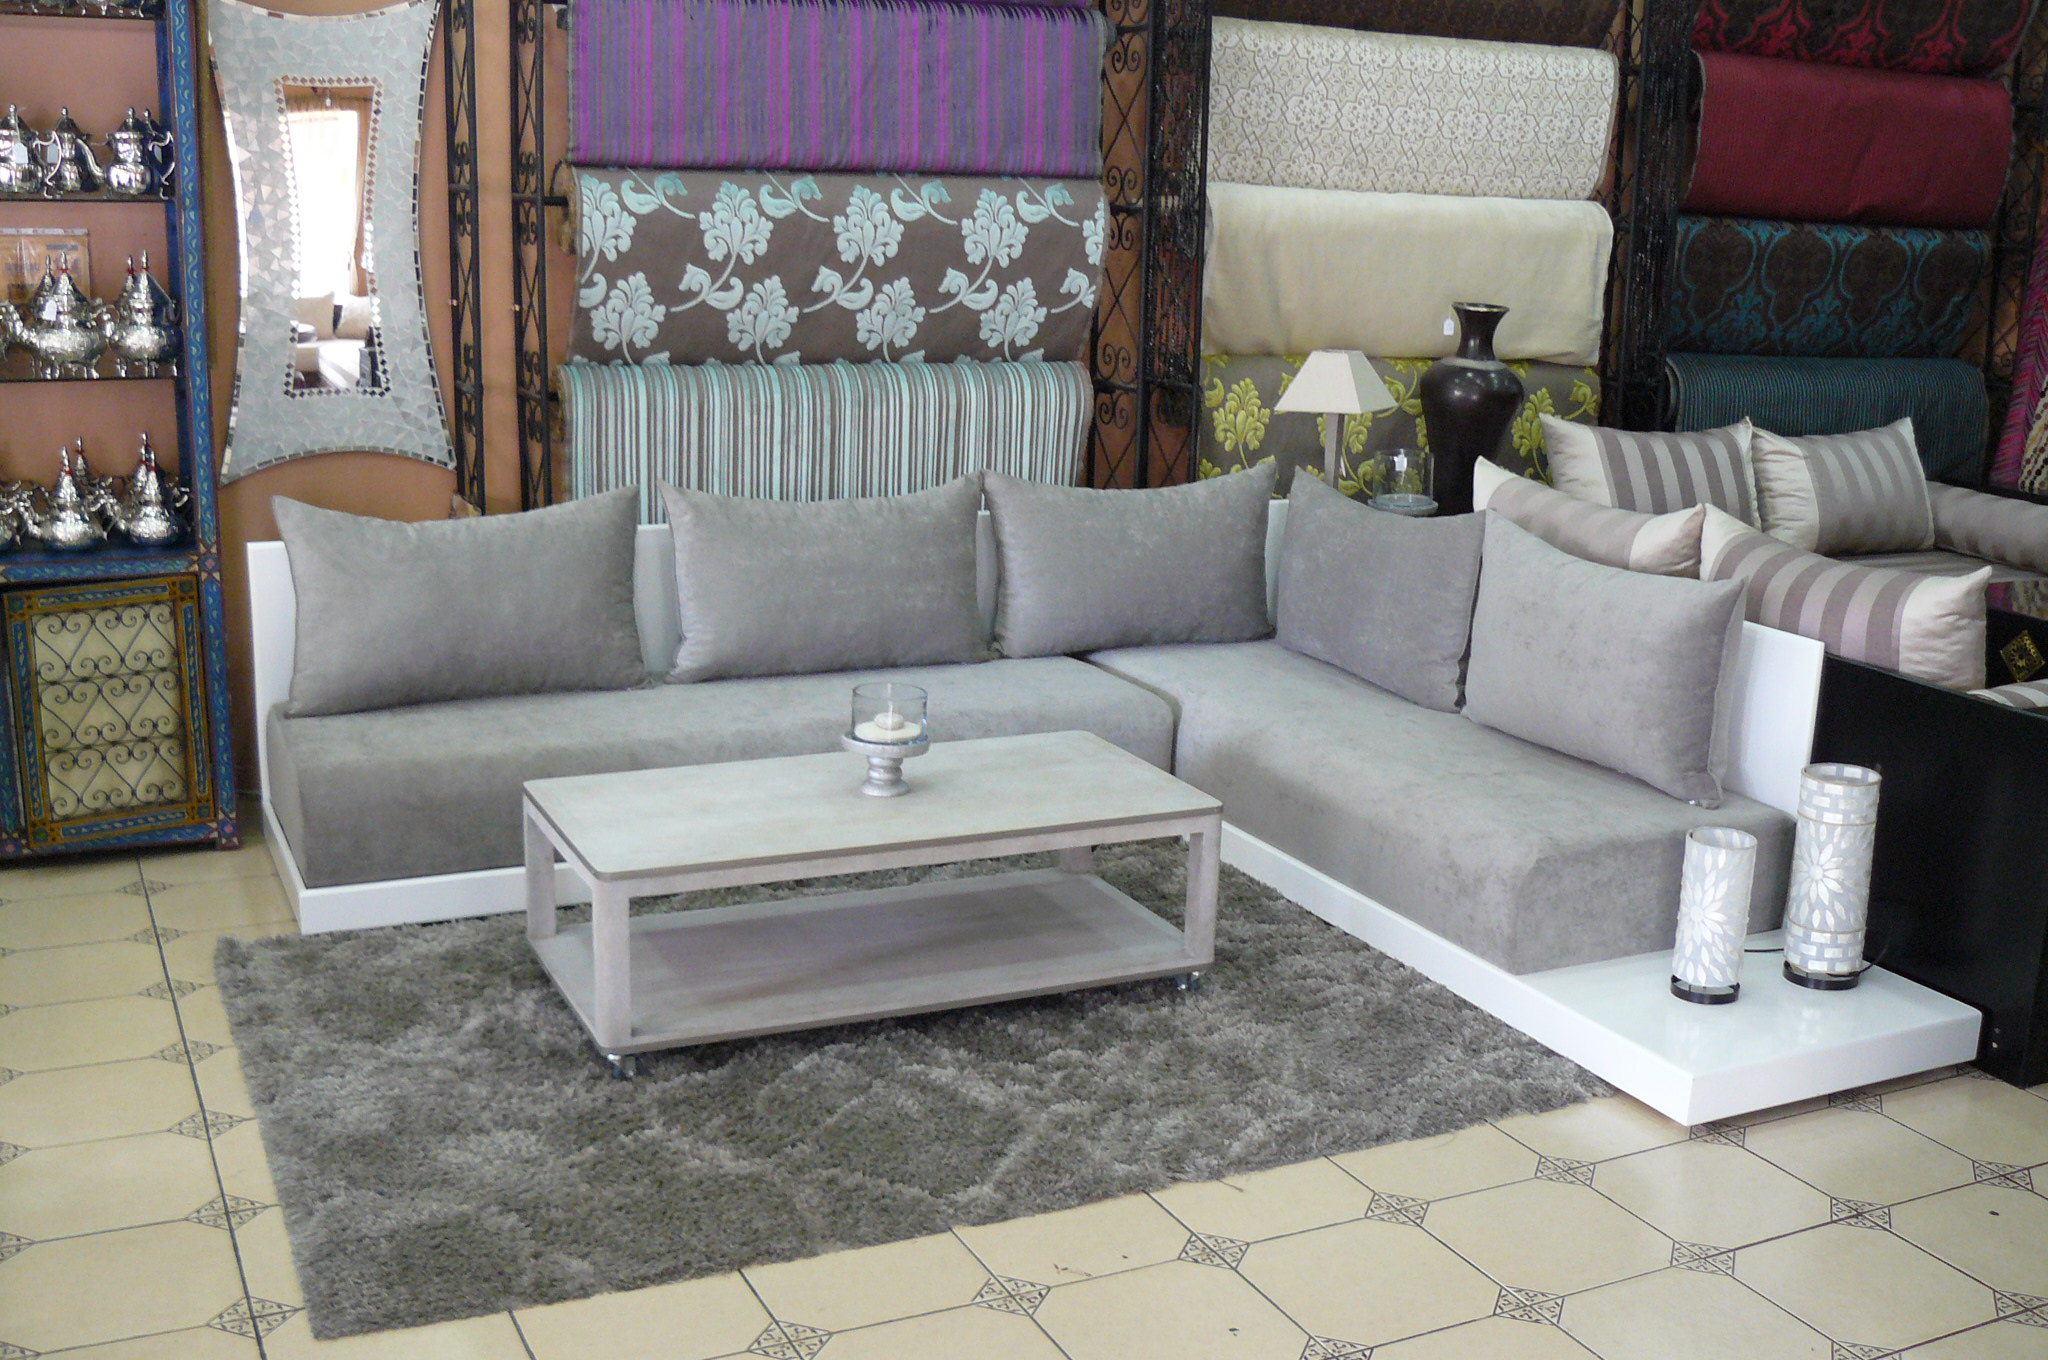 Vente de salon marocain montr al d co salon marocain for Decoration salon simple